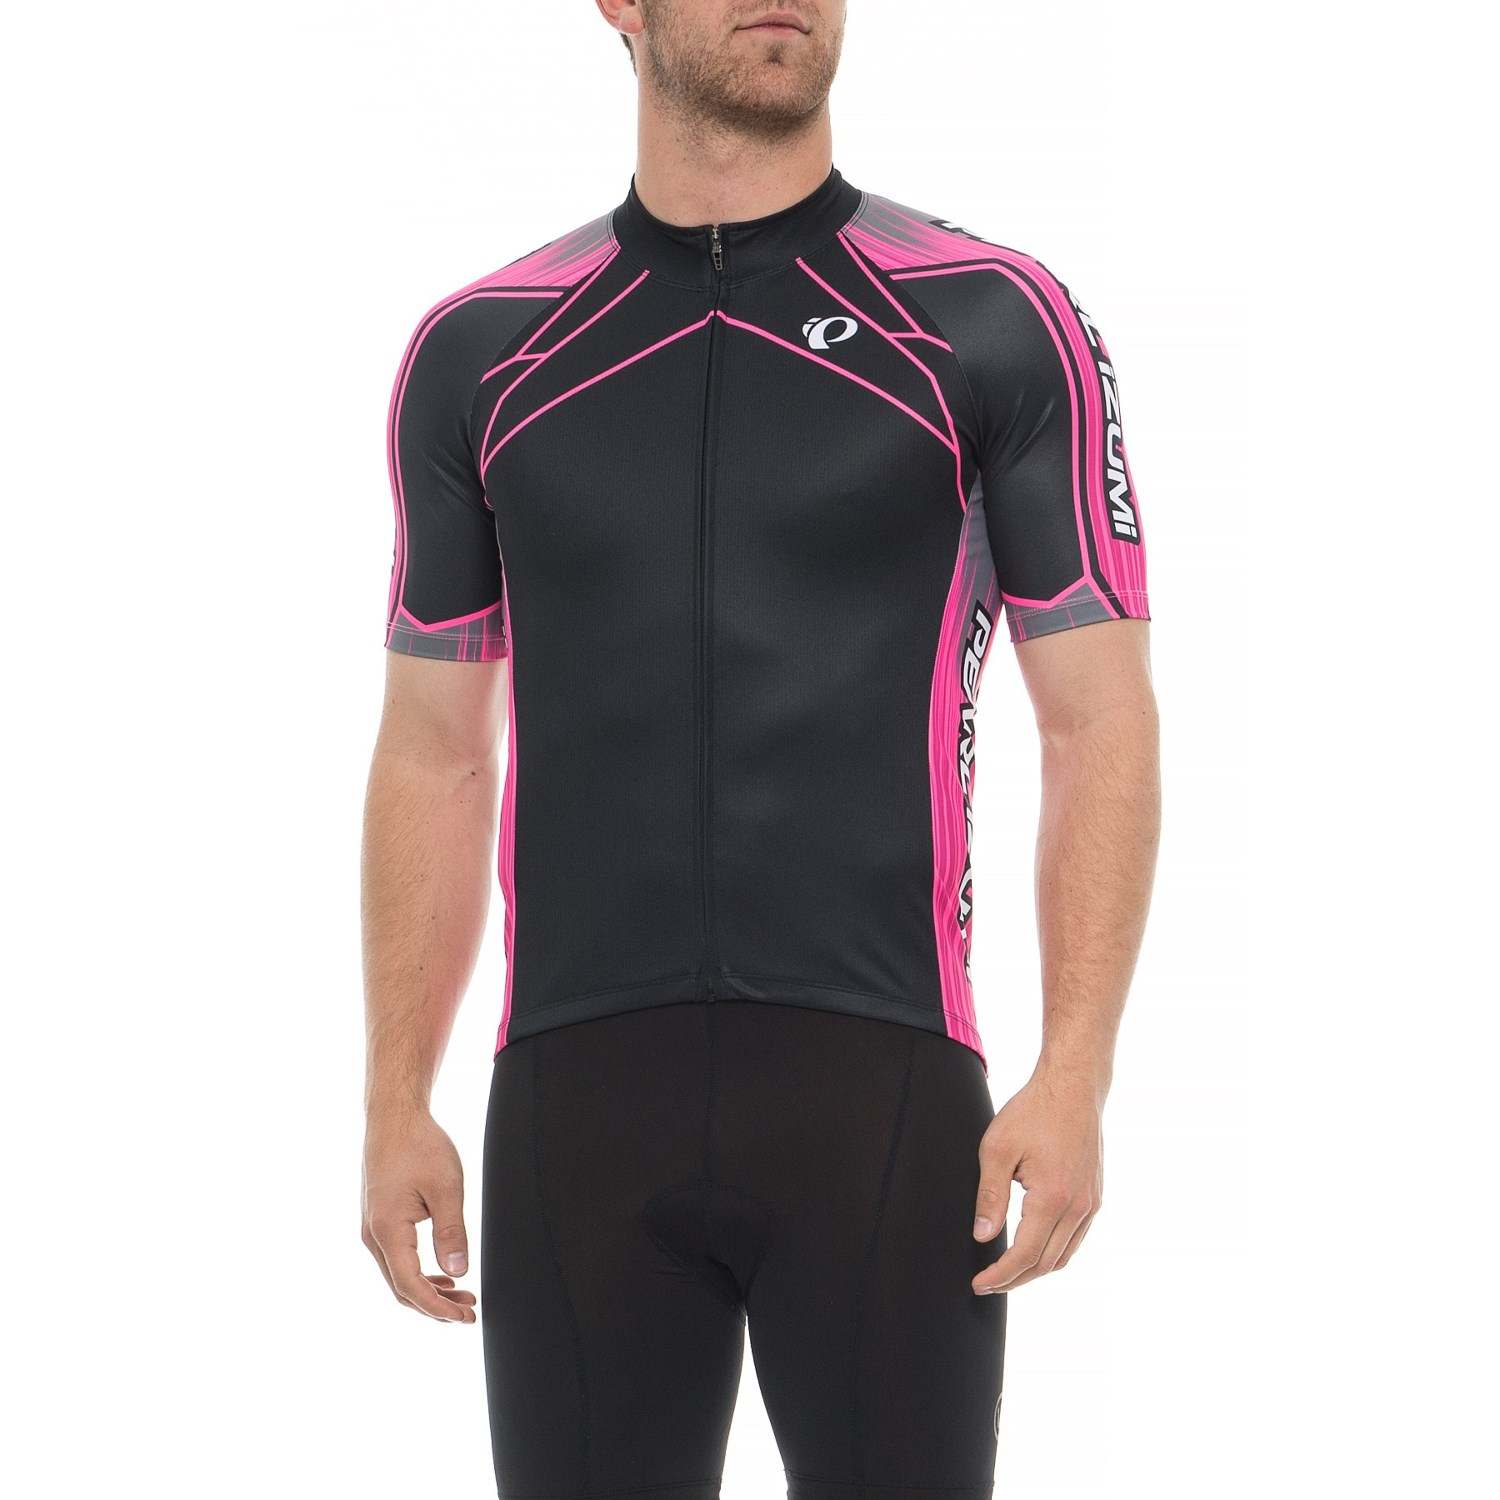 dc6404f86 Pearl izumi elite pursuit cycling jersey full zip short sleeve for men in  vaporize screaming pink